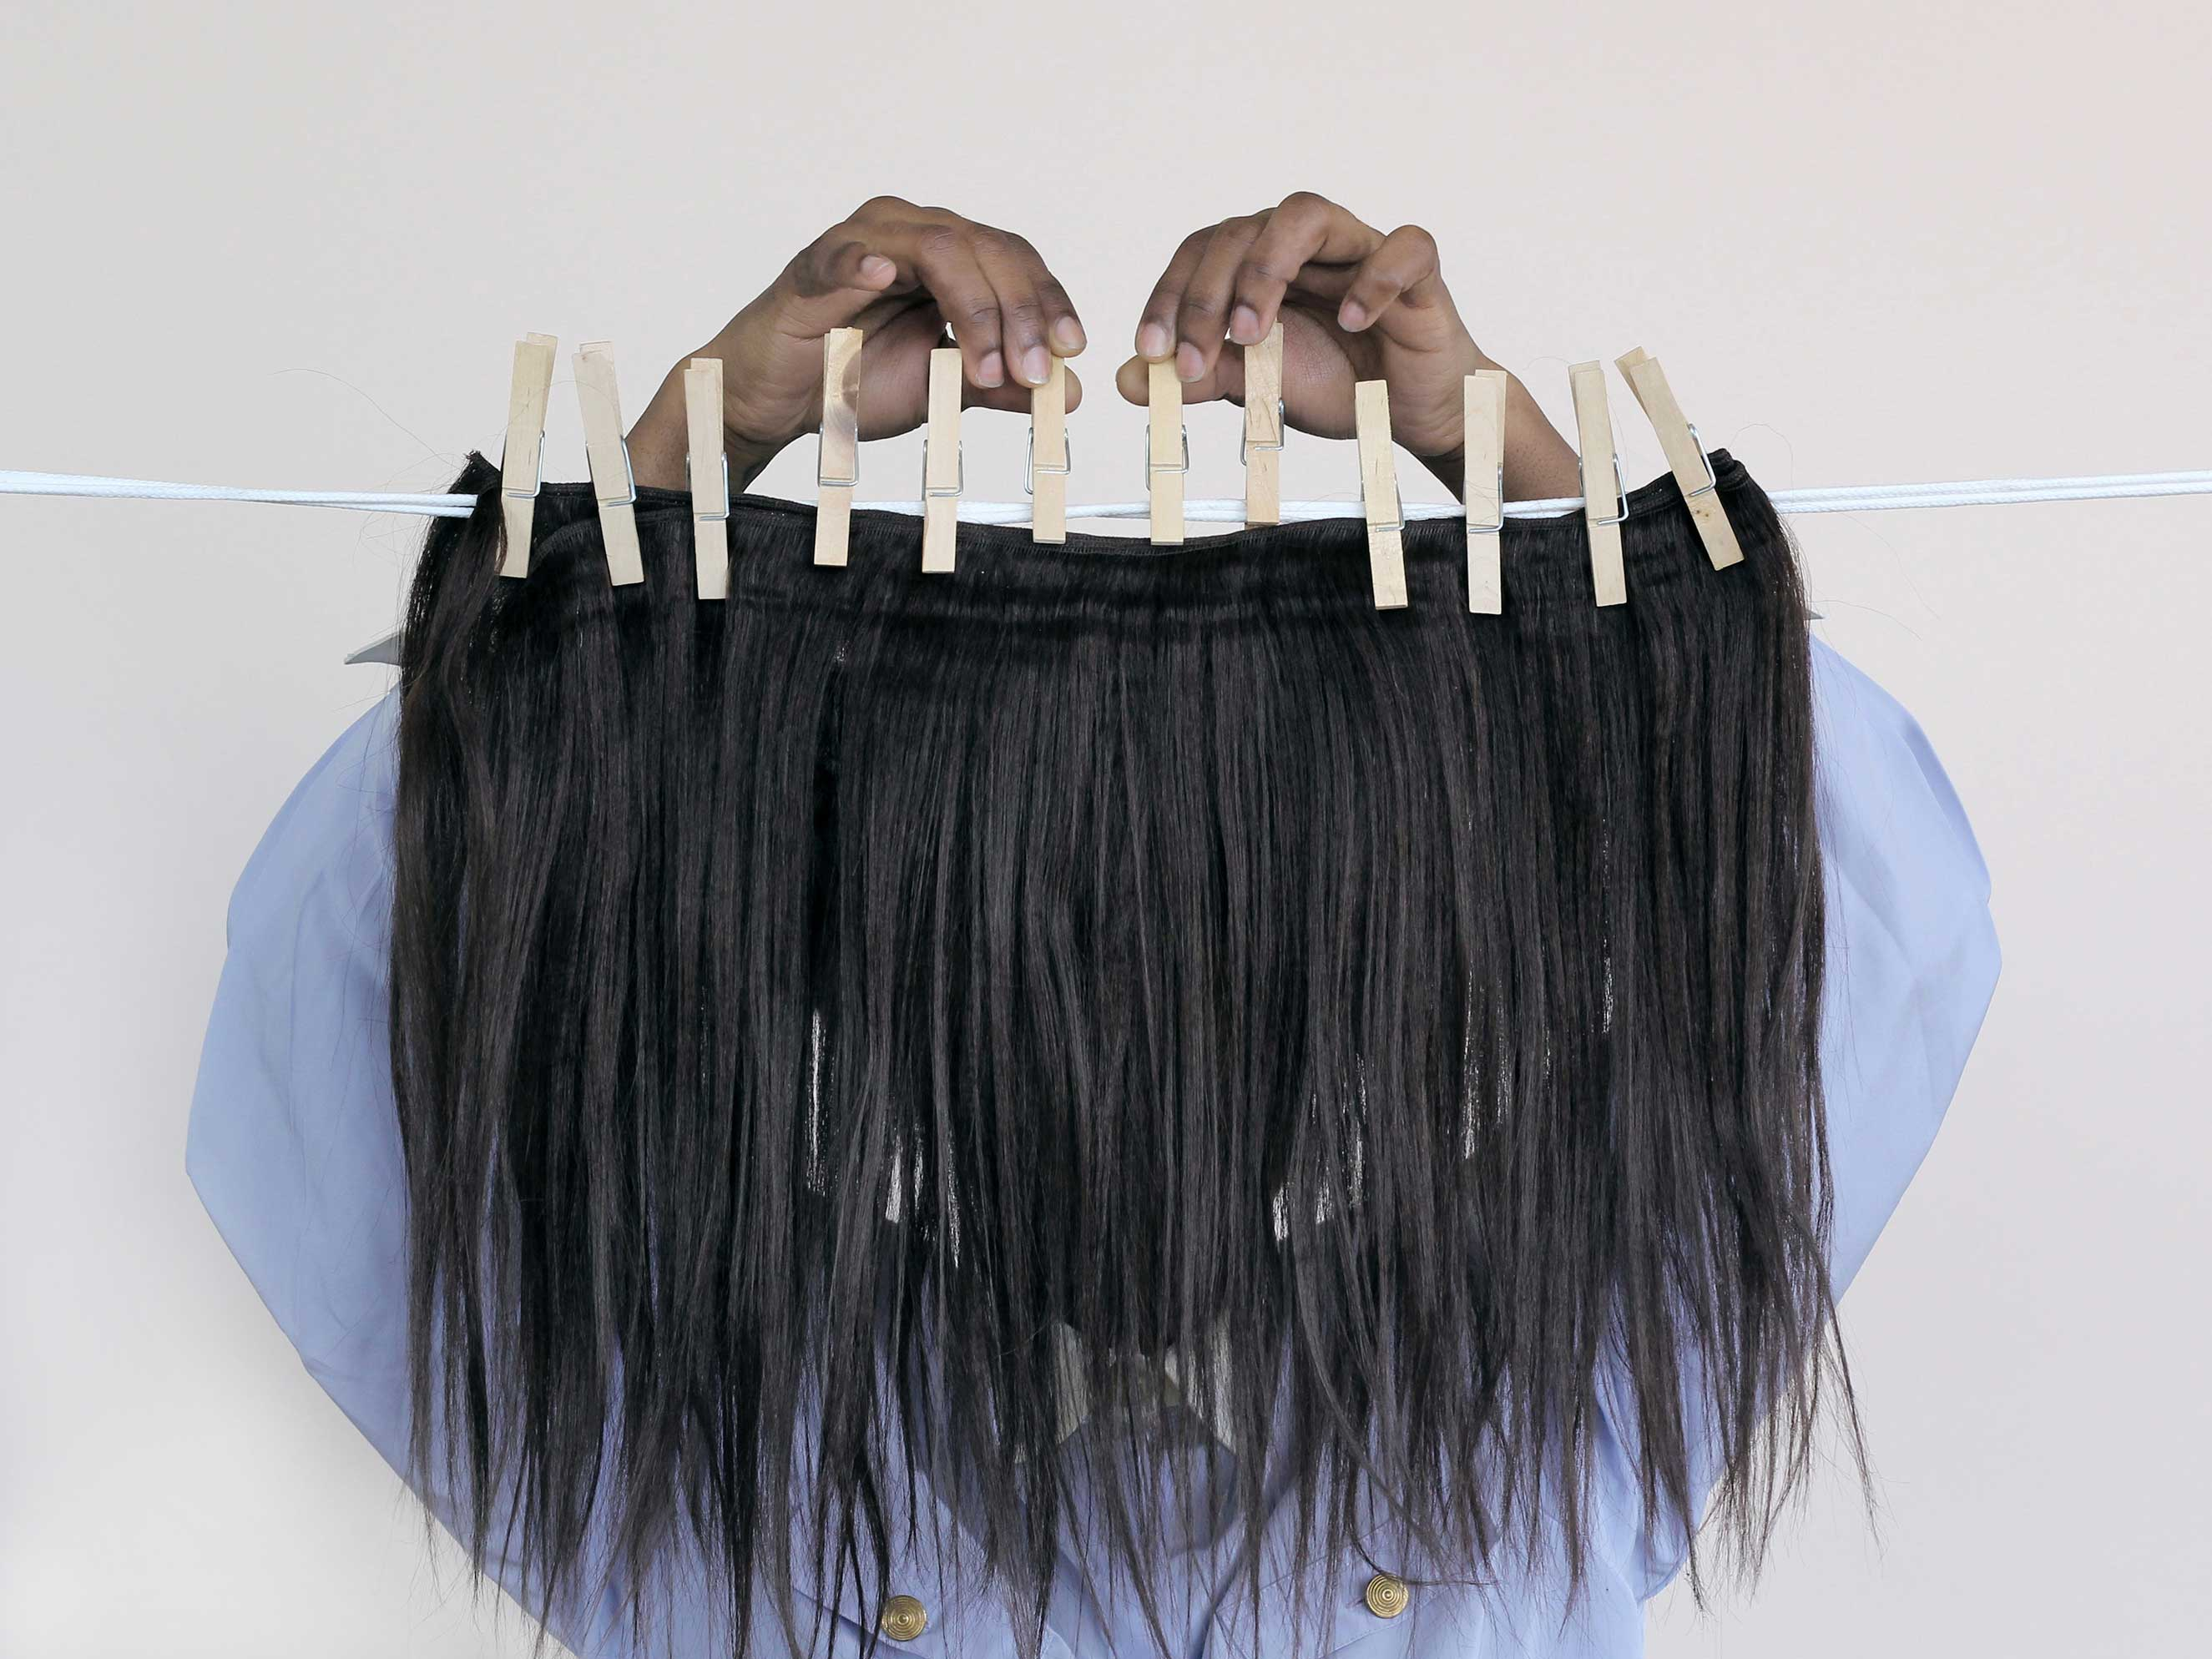 'The Art of Drying', Hair Stories Untold